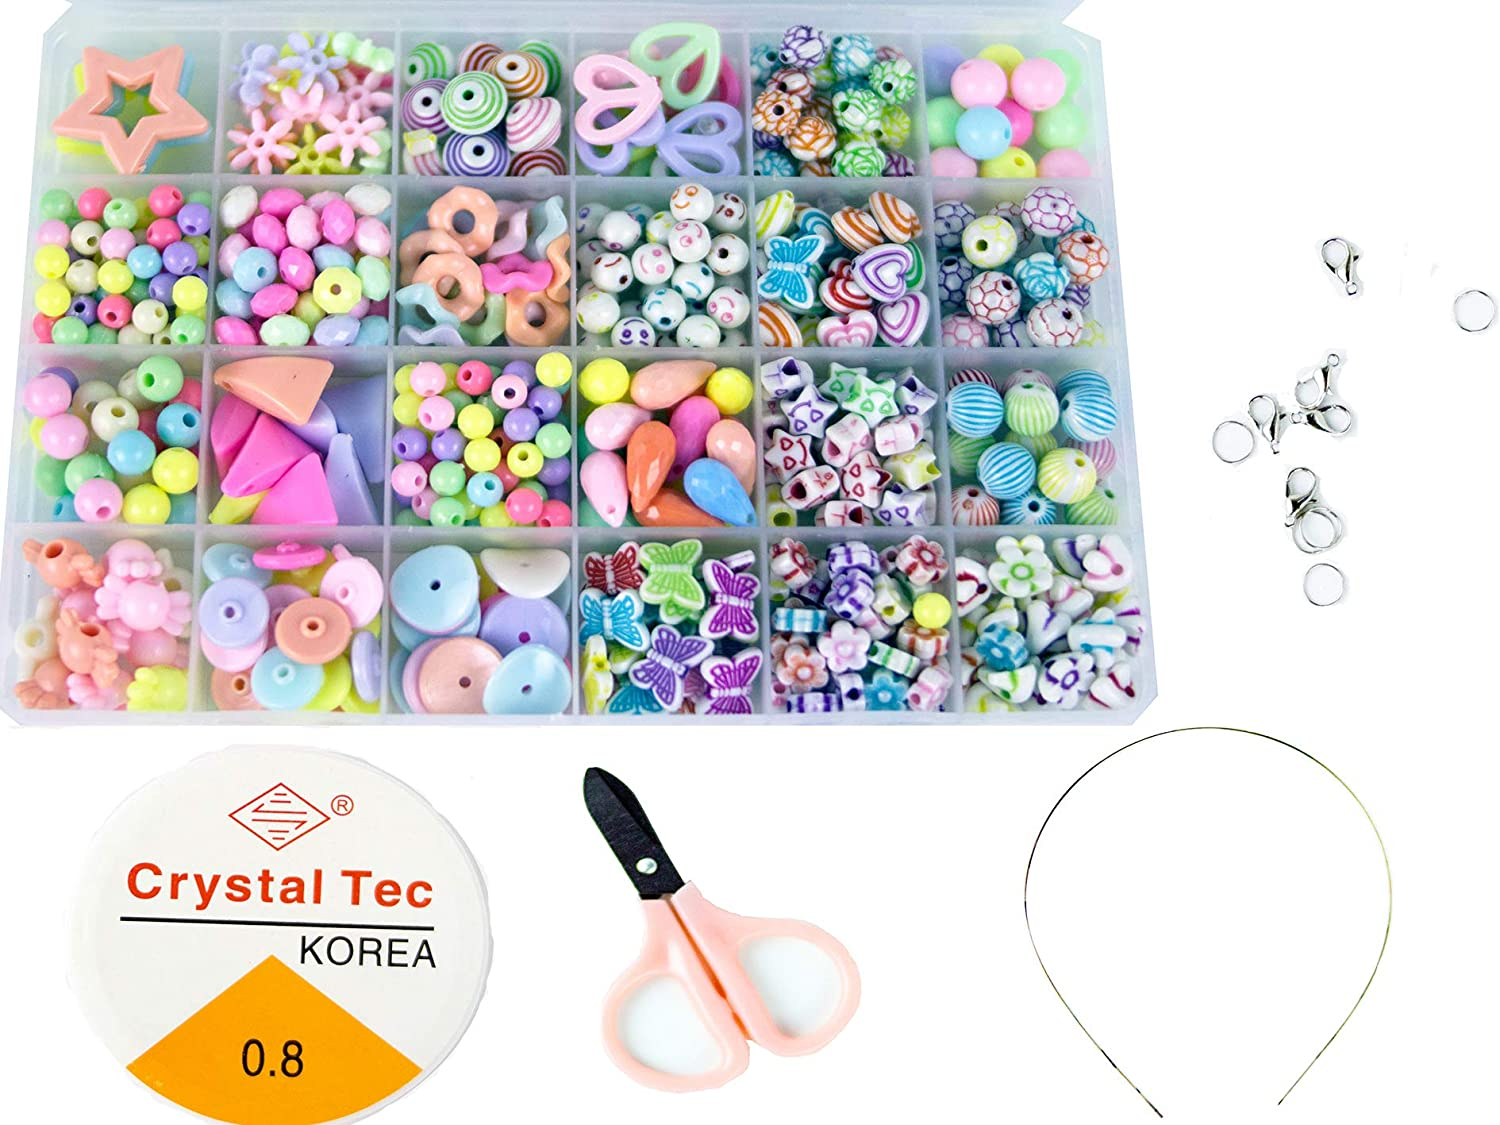 Colorful Candy 500pcs H10N 24 griddiy 500PCS Children Beaded Toys Amblyopia Correction Beads Educational Toys,it can Also be Used to Make Bracelets or Necklace.